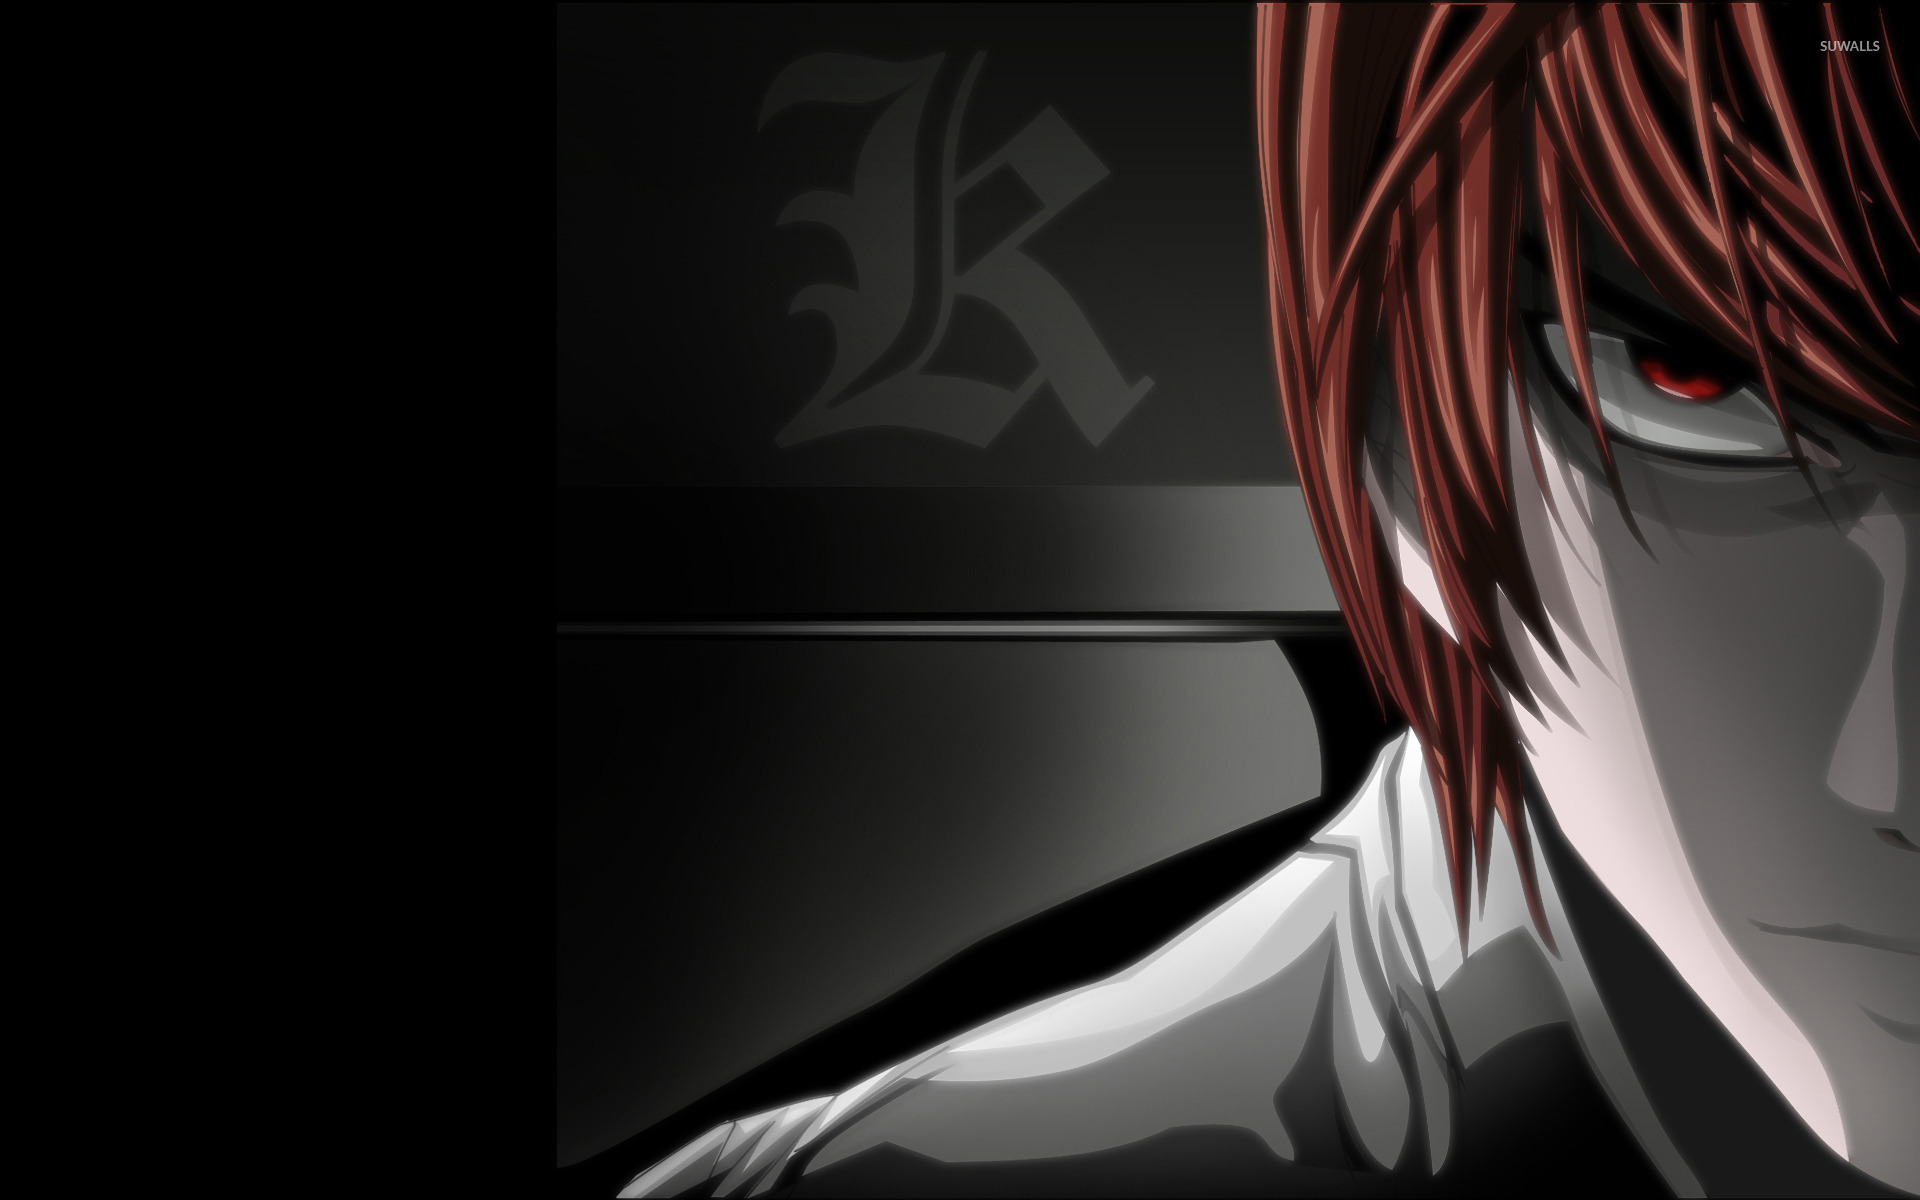 Light Death Note 2 Wallpaper Anime Wallpapers 14148